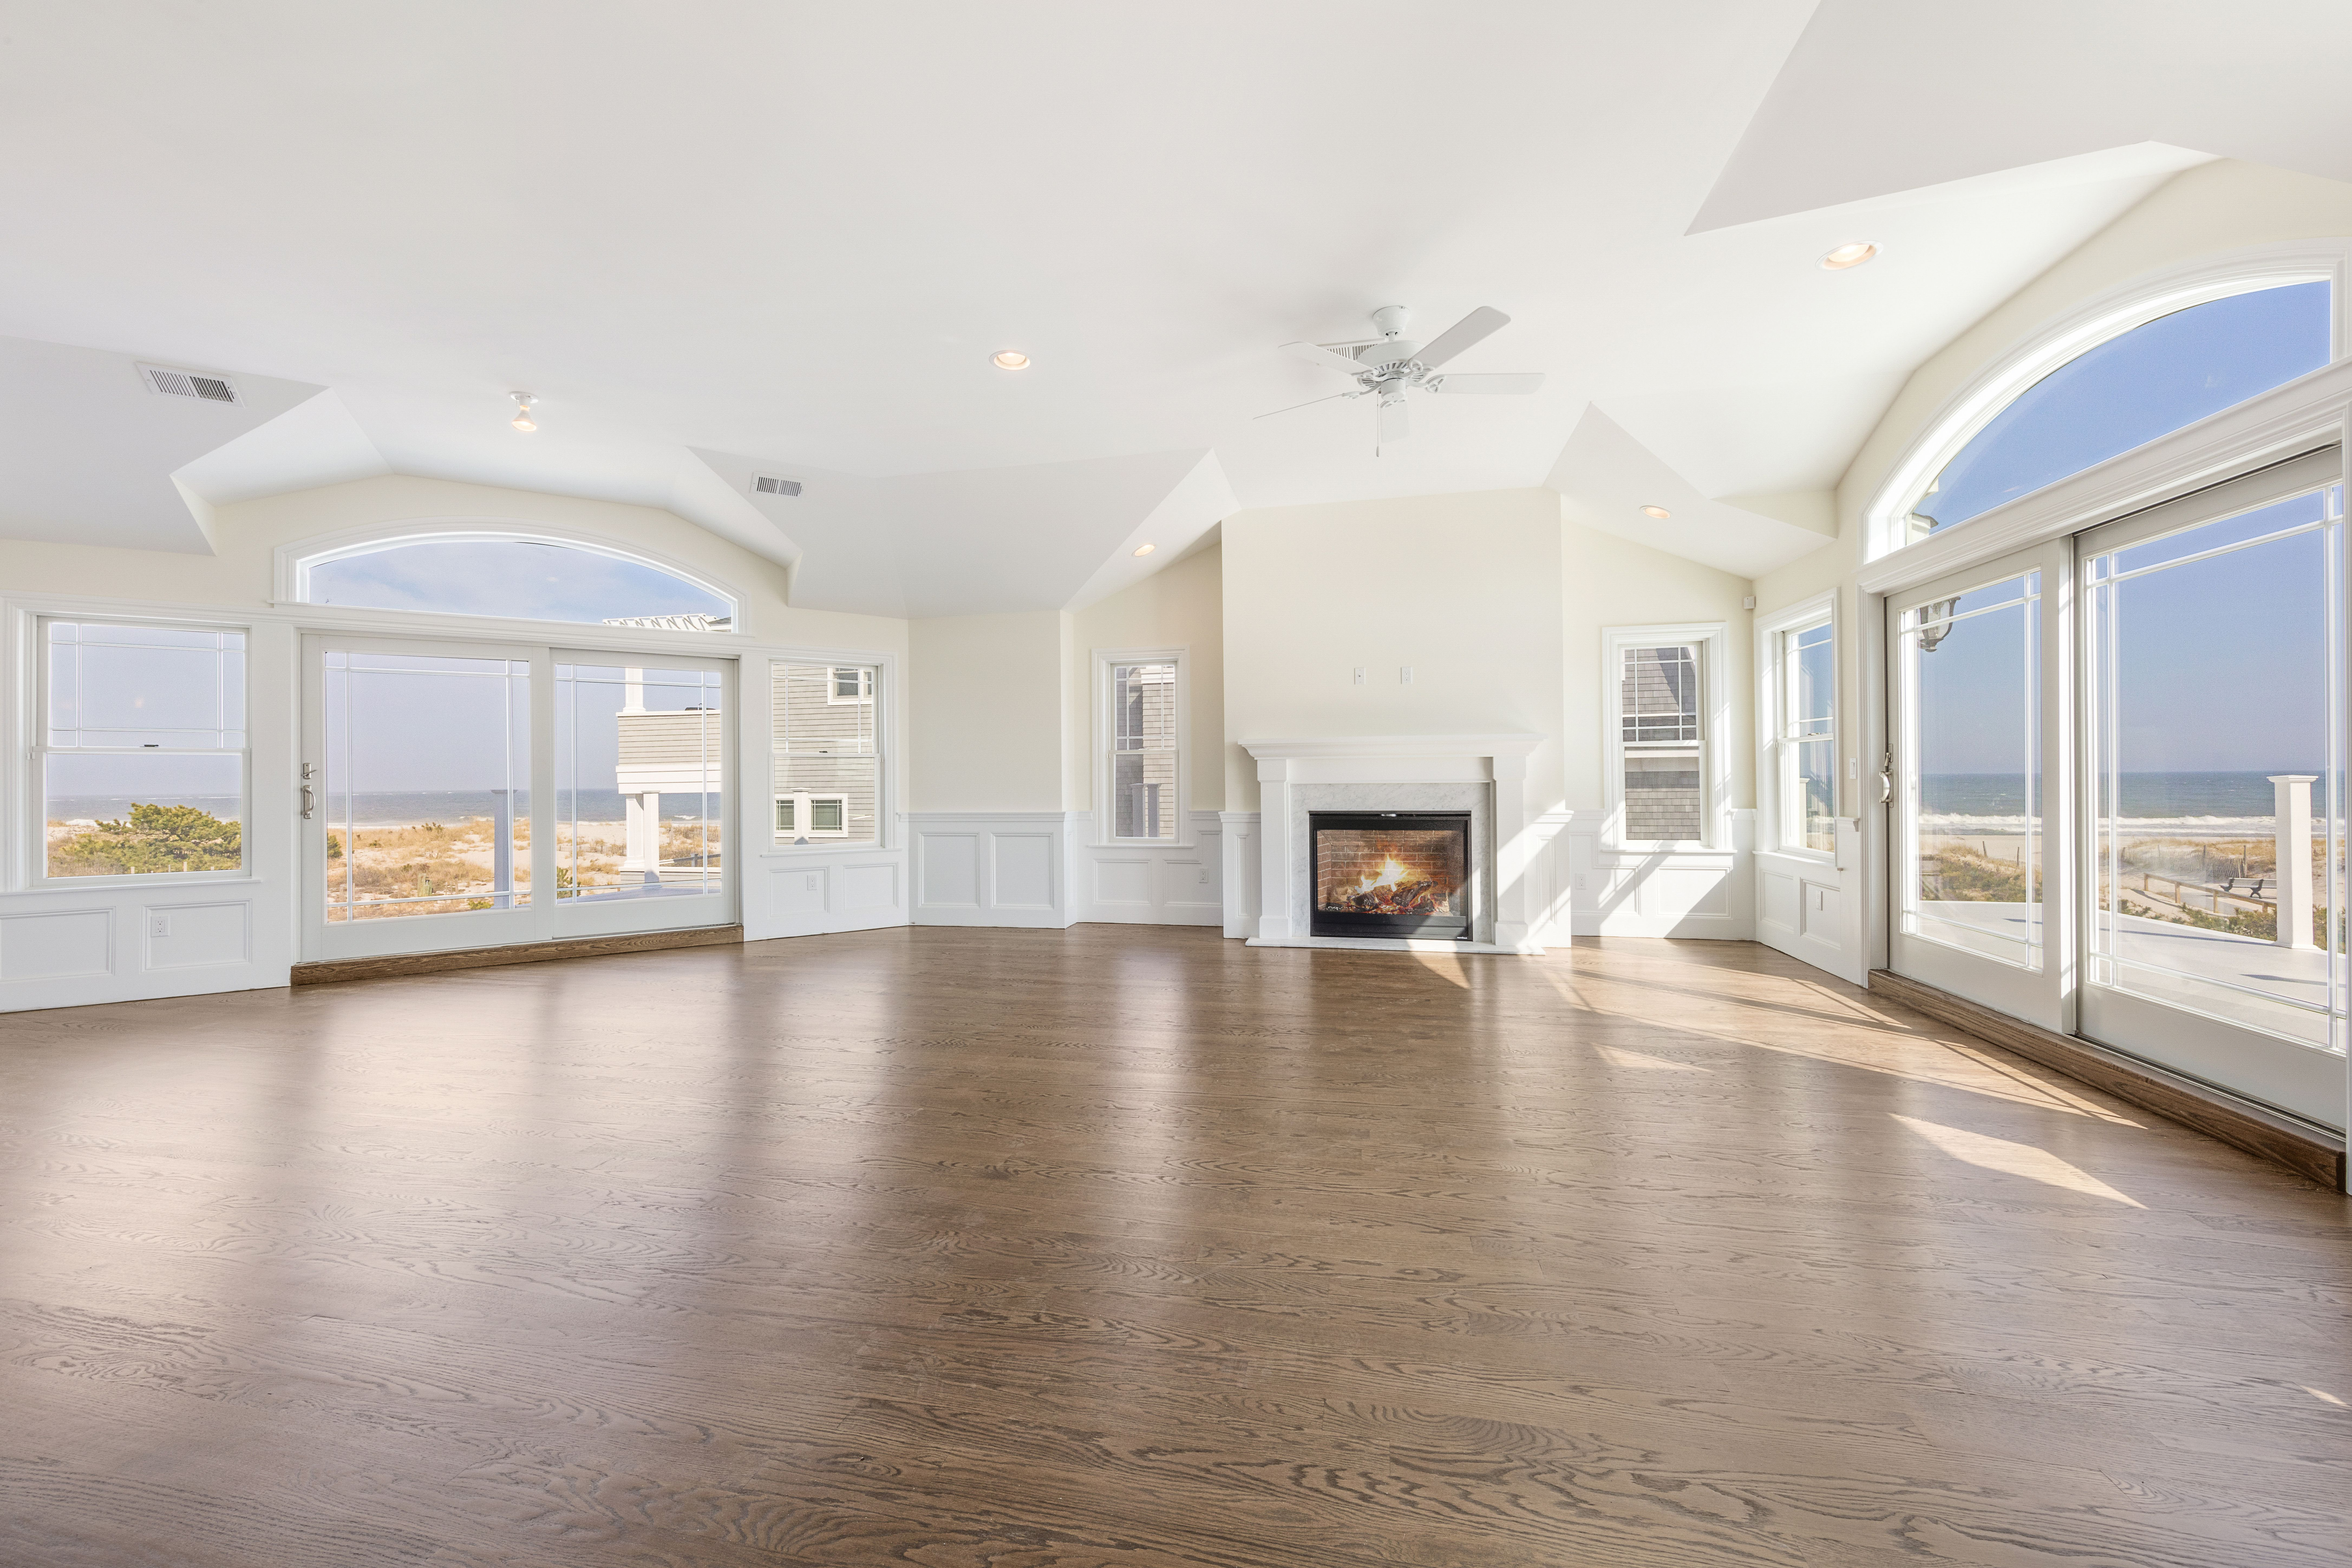 This 4000 sqft estate boasts 6 bedrooms, 5 full baths, and